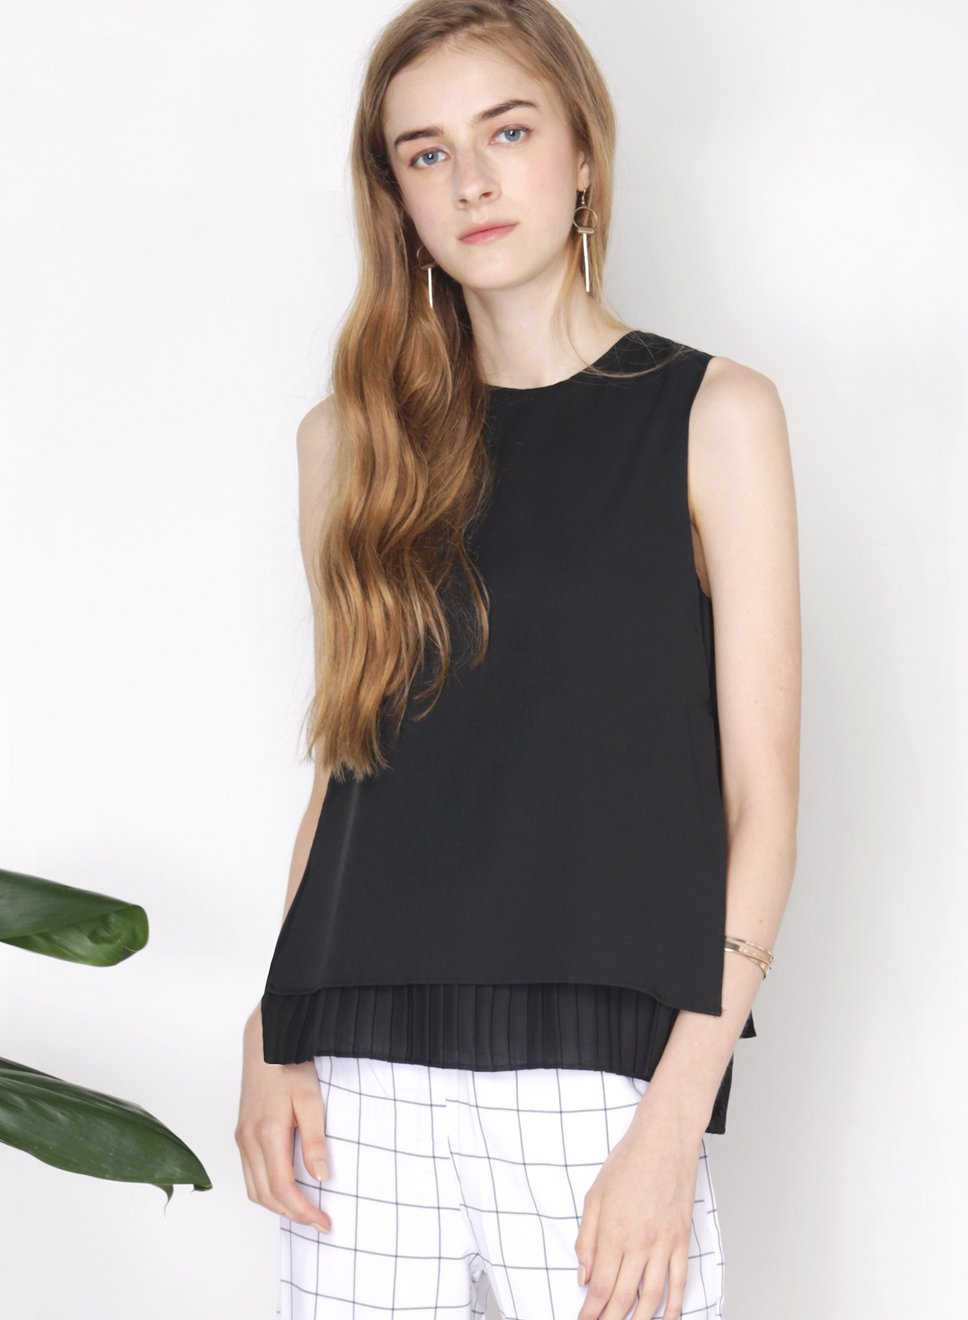 COLLIDE overlay pleats top (Black) - And Well Dressed